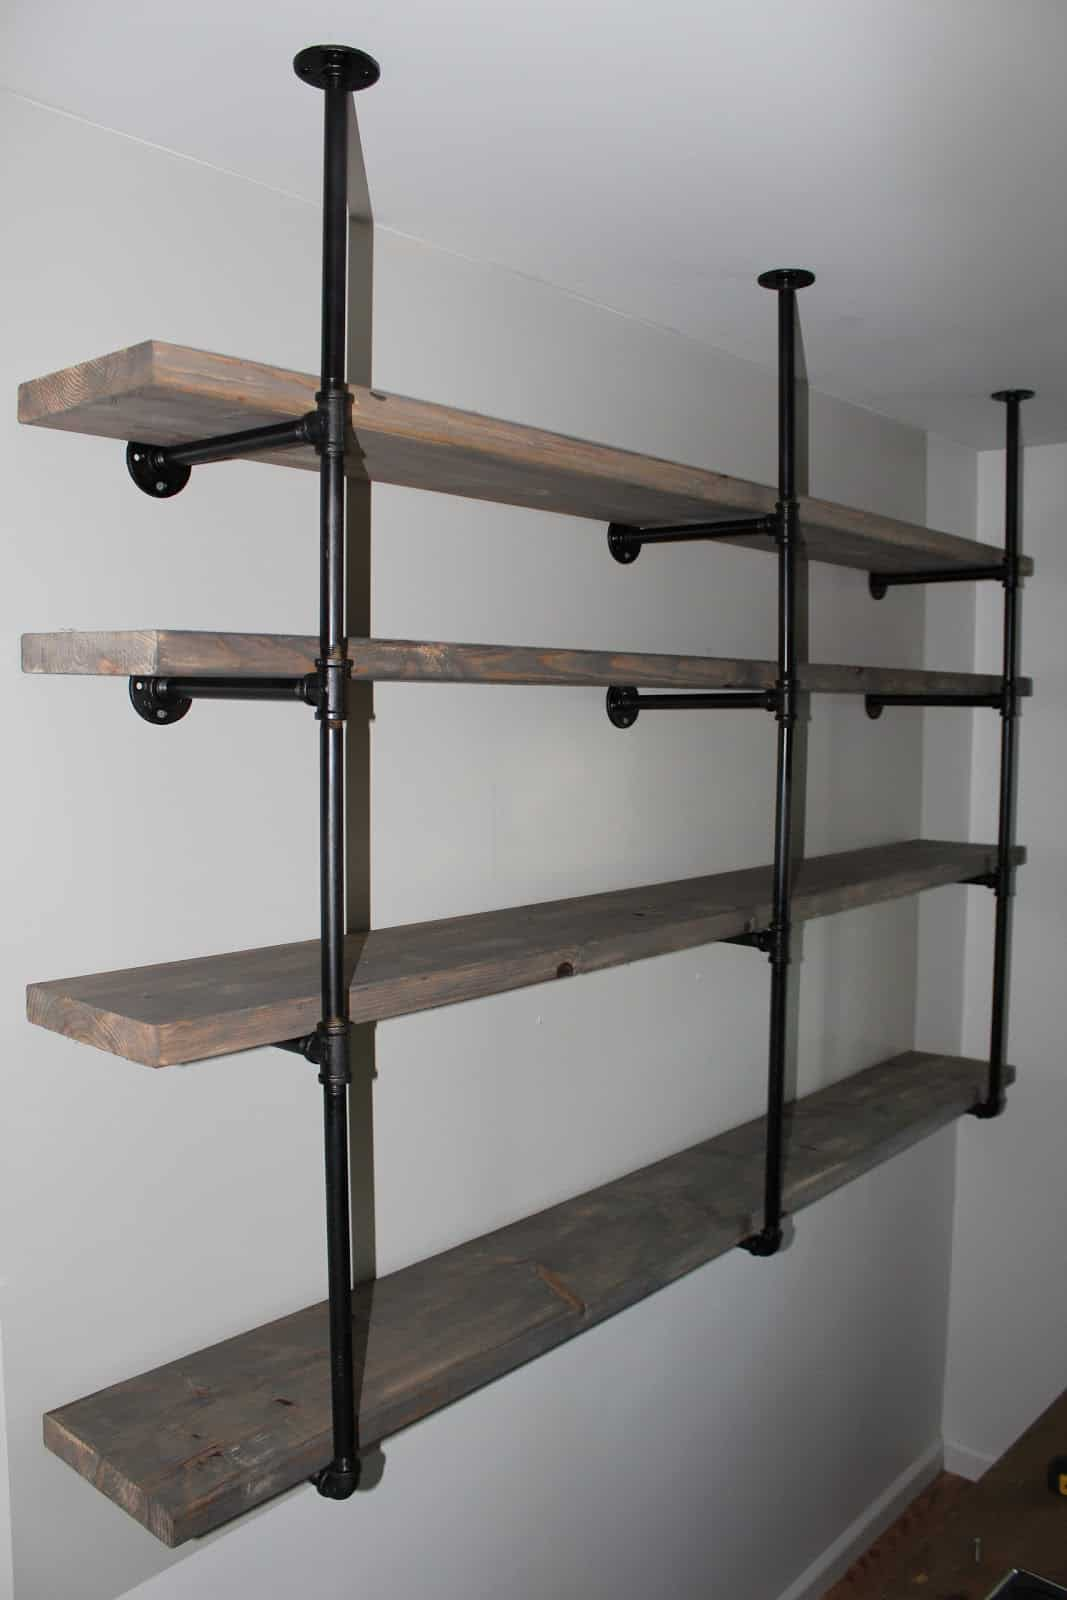 Wall and ceiling braced industrial shelves